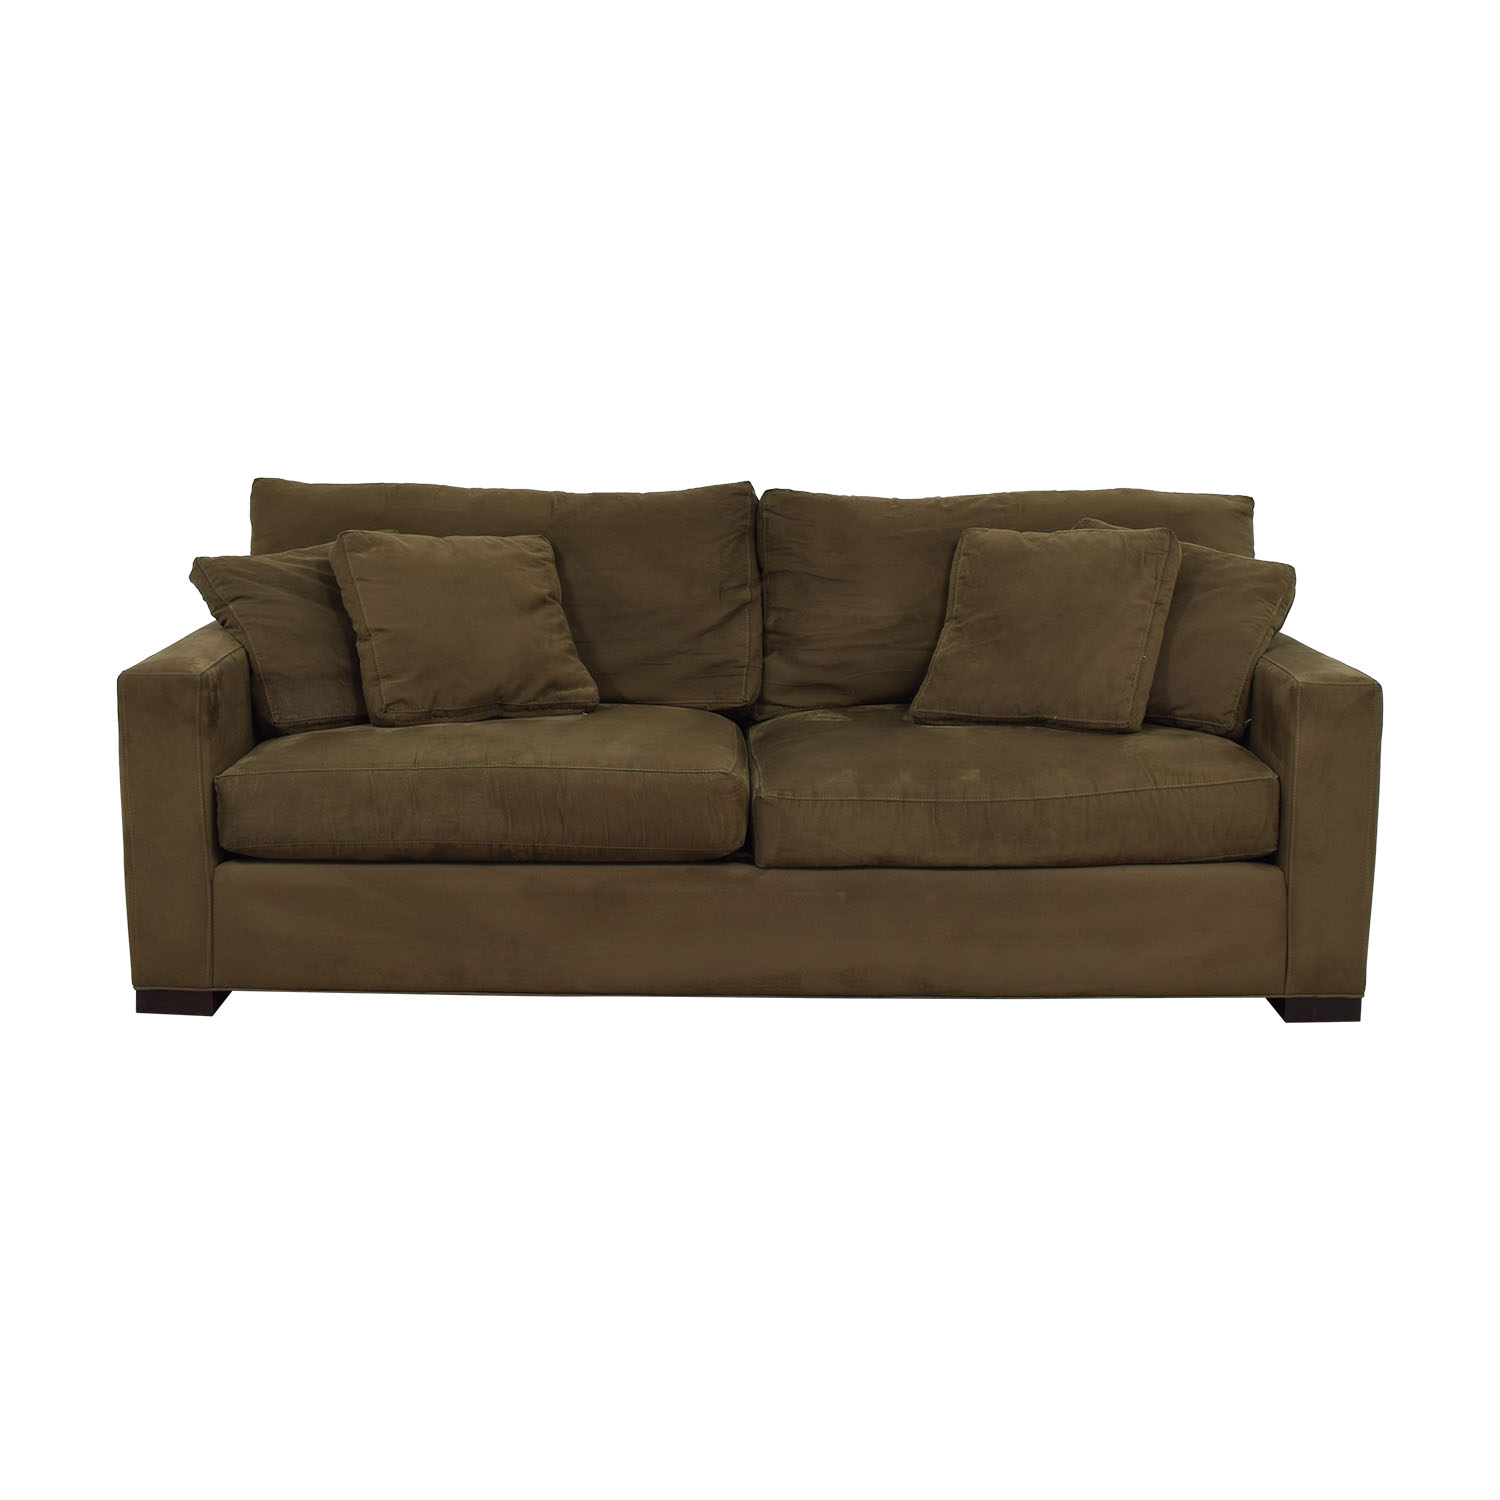 shop Crate & Barrel Axis Sofa Crate & Barrel